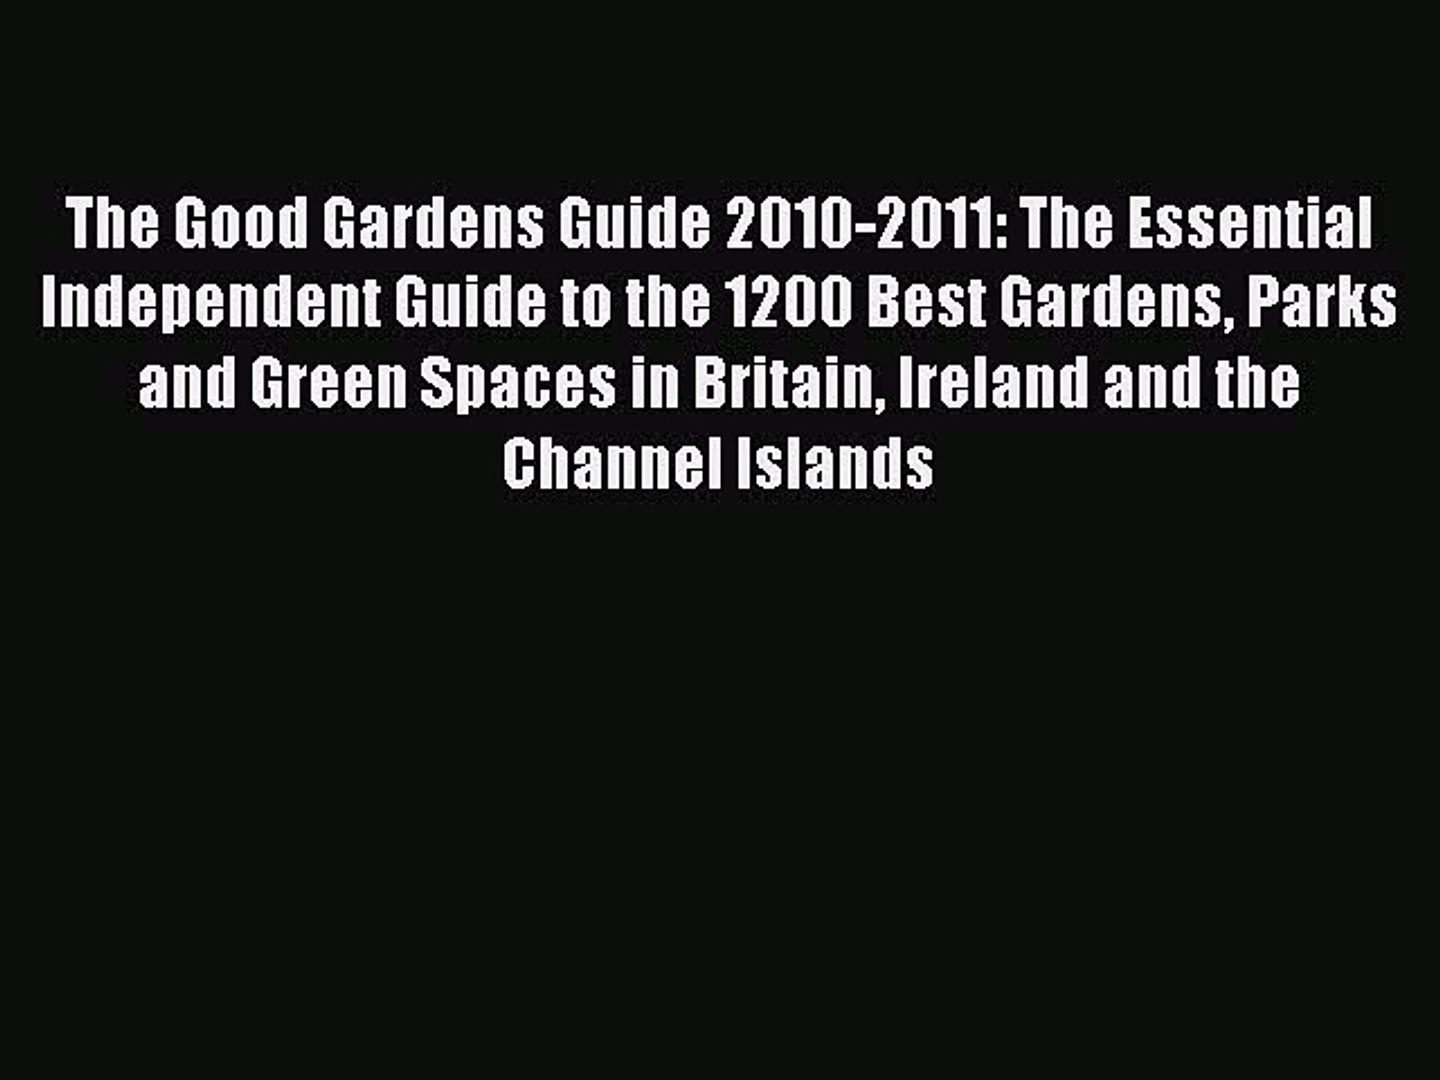 Read The Good Gardens Guide 2010-2011: The Essential Independent Guide to the 1200 Best Gardens